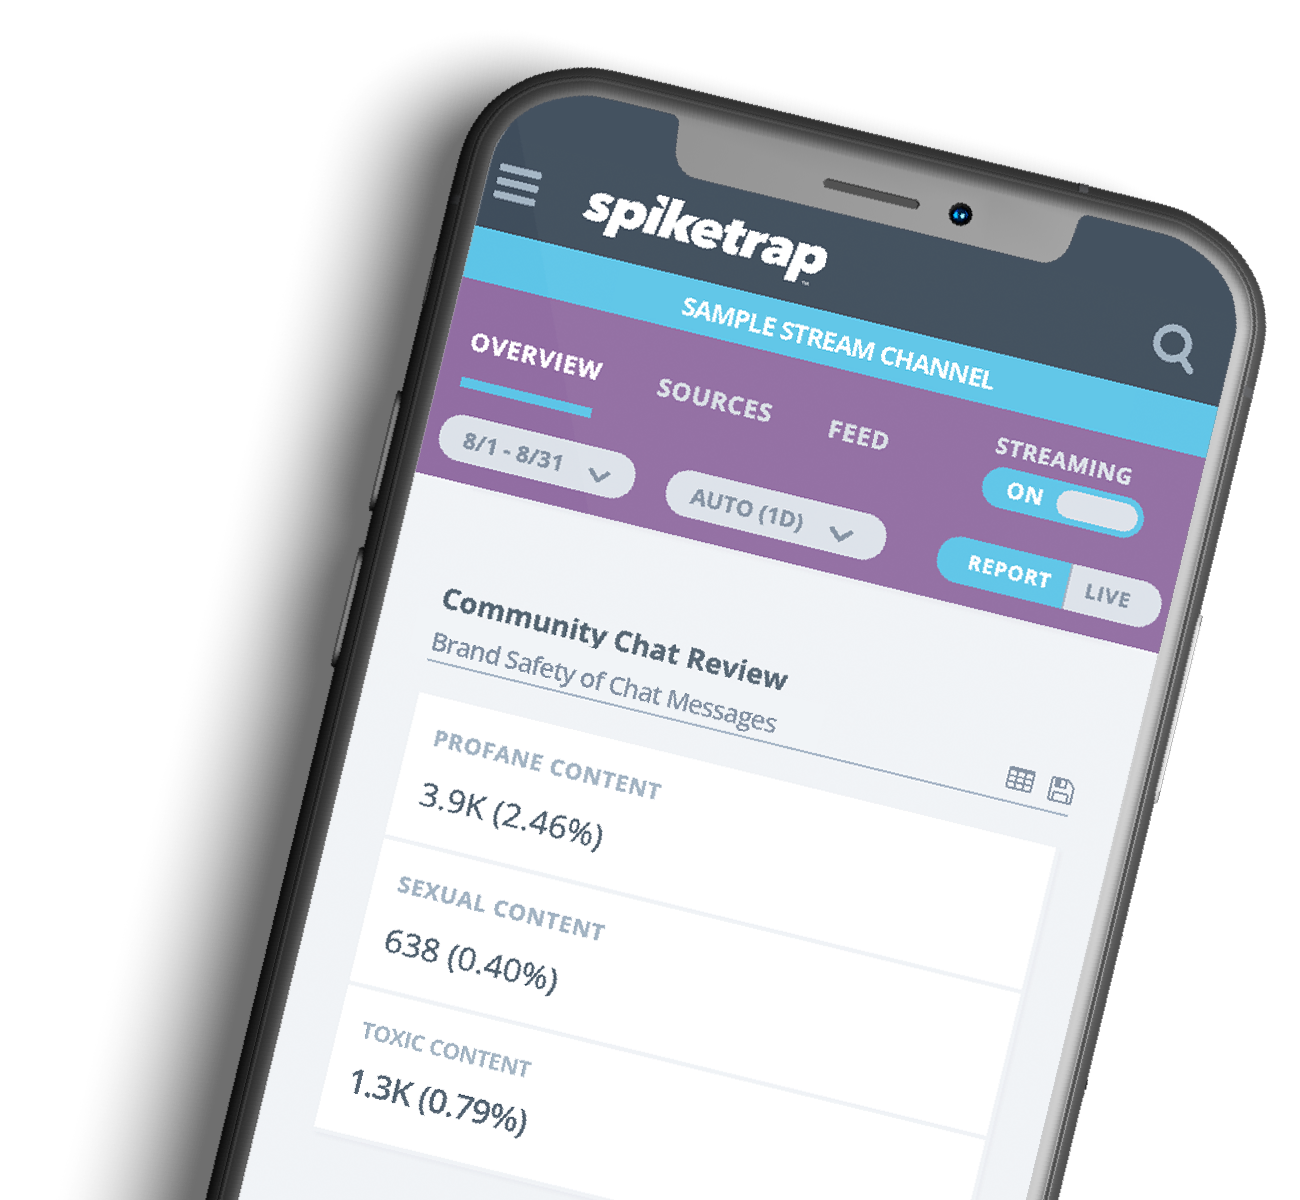 Spiketrap brand safety monitoring on mobile